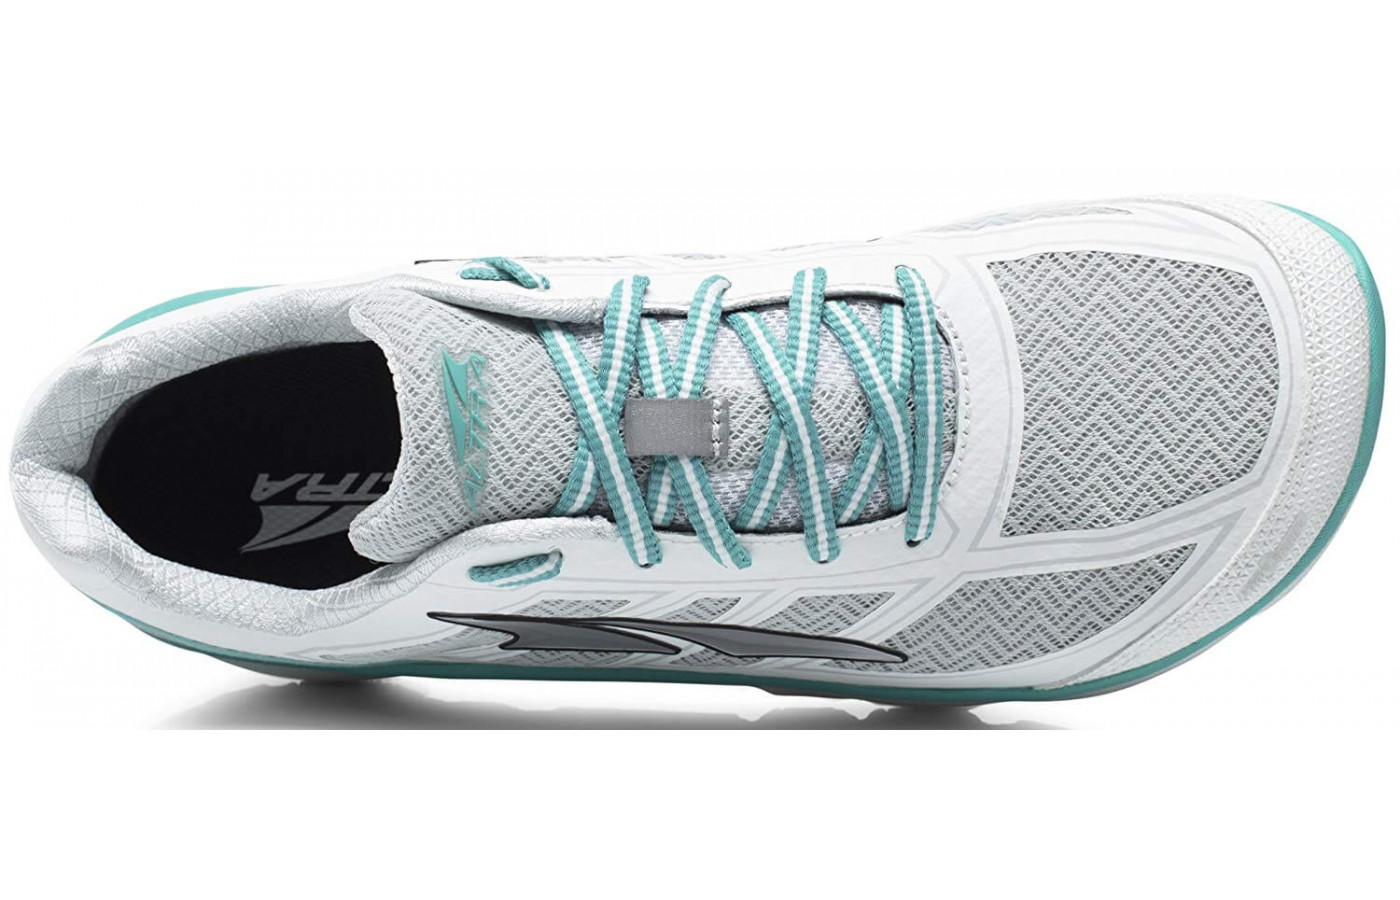 The Provision 3.5's upper is constructed of Quick Dry Air Mesh and features overlays for structure